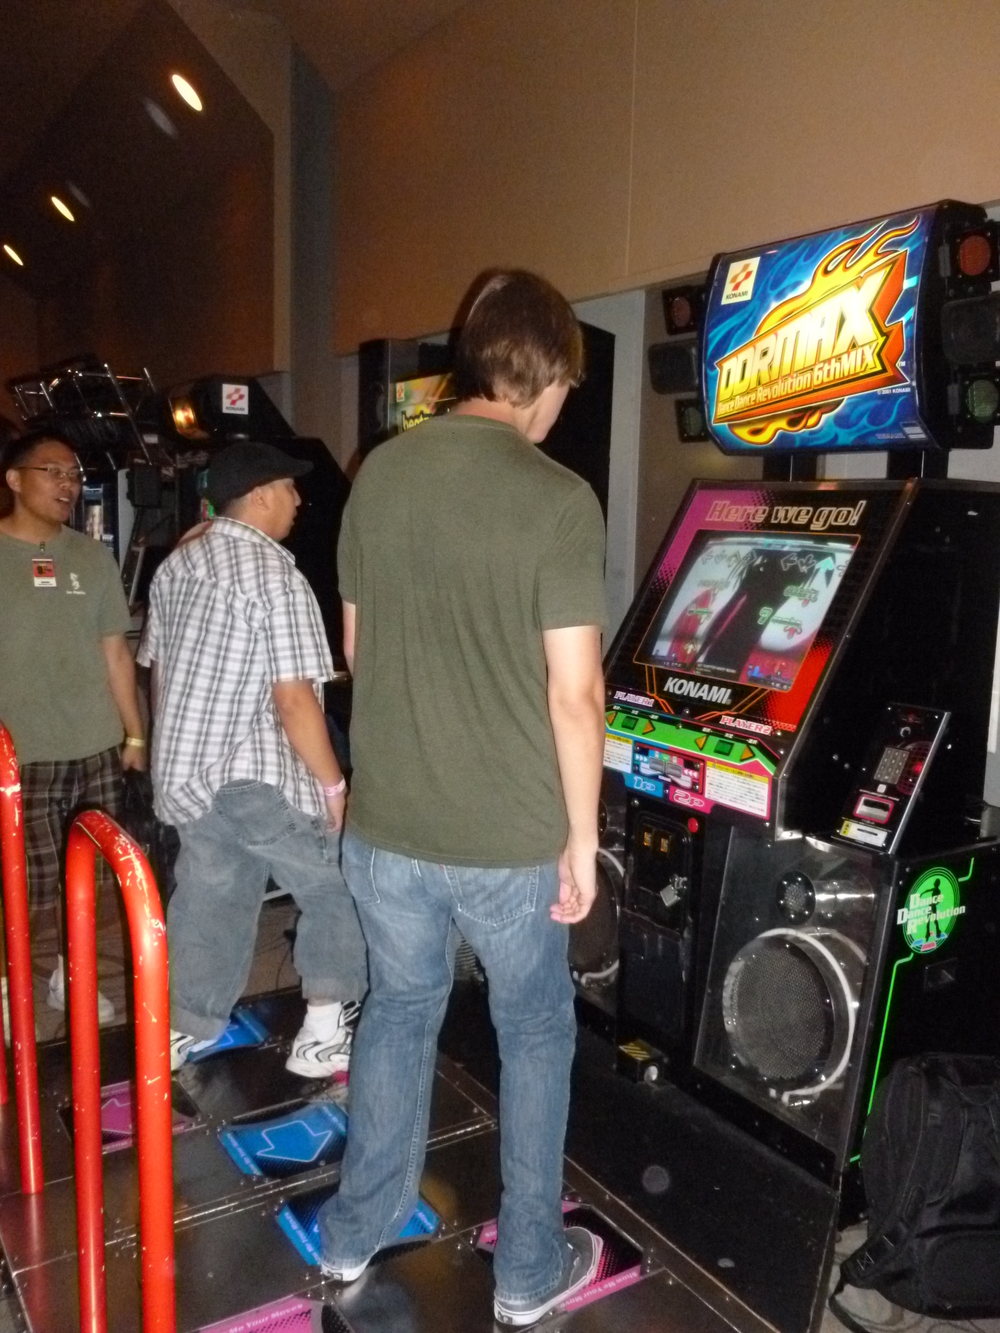 I was quite suprised that they had a DDR machine, even more suprised it was a recent version (DDRX3 with 2nd Mix).JPG